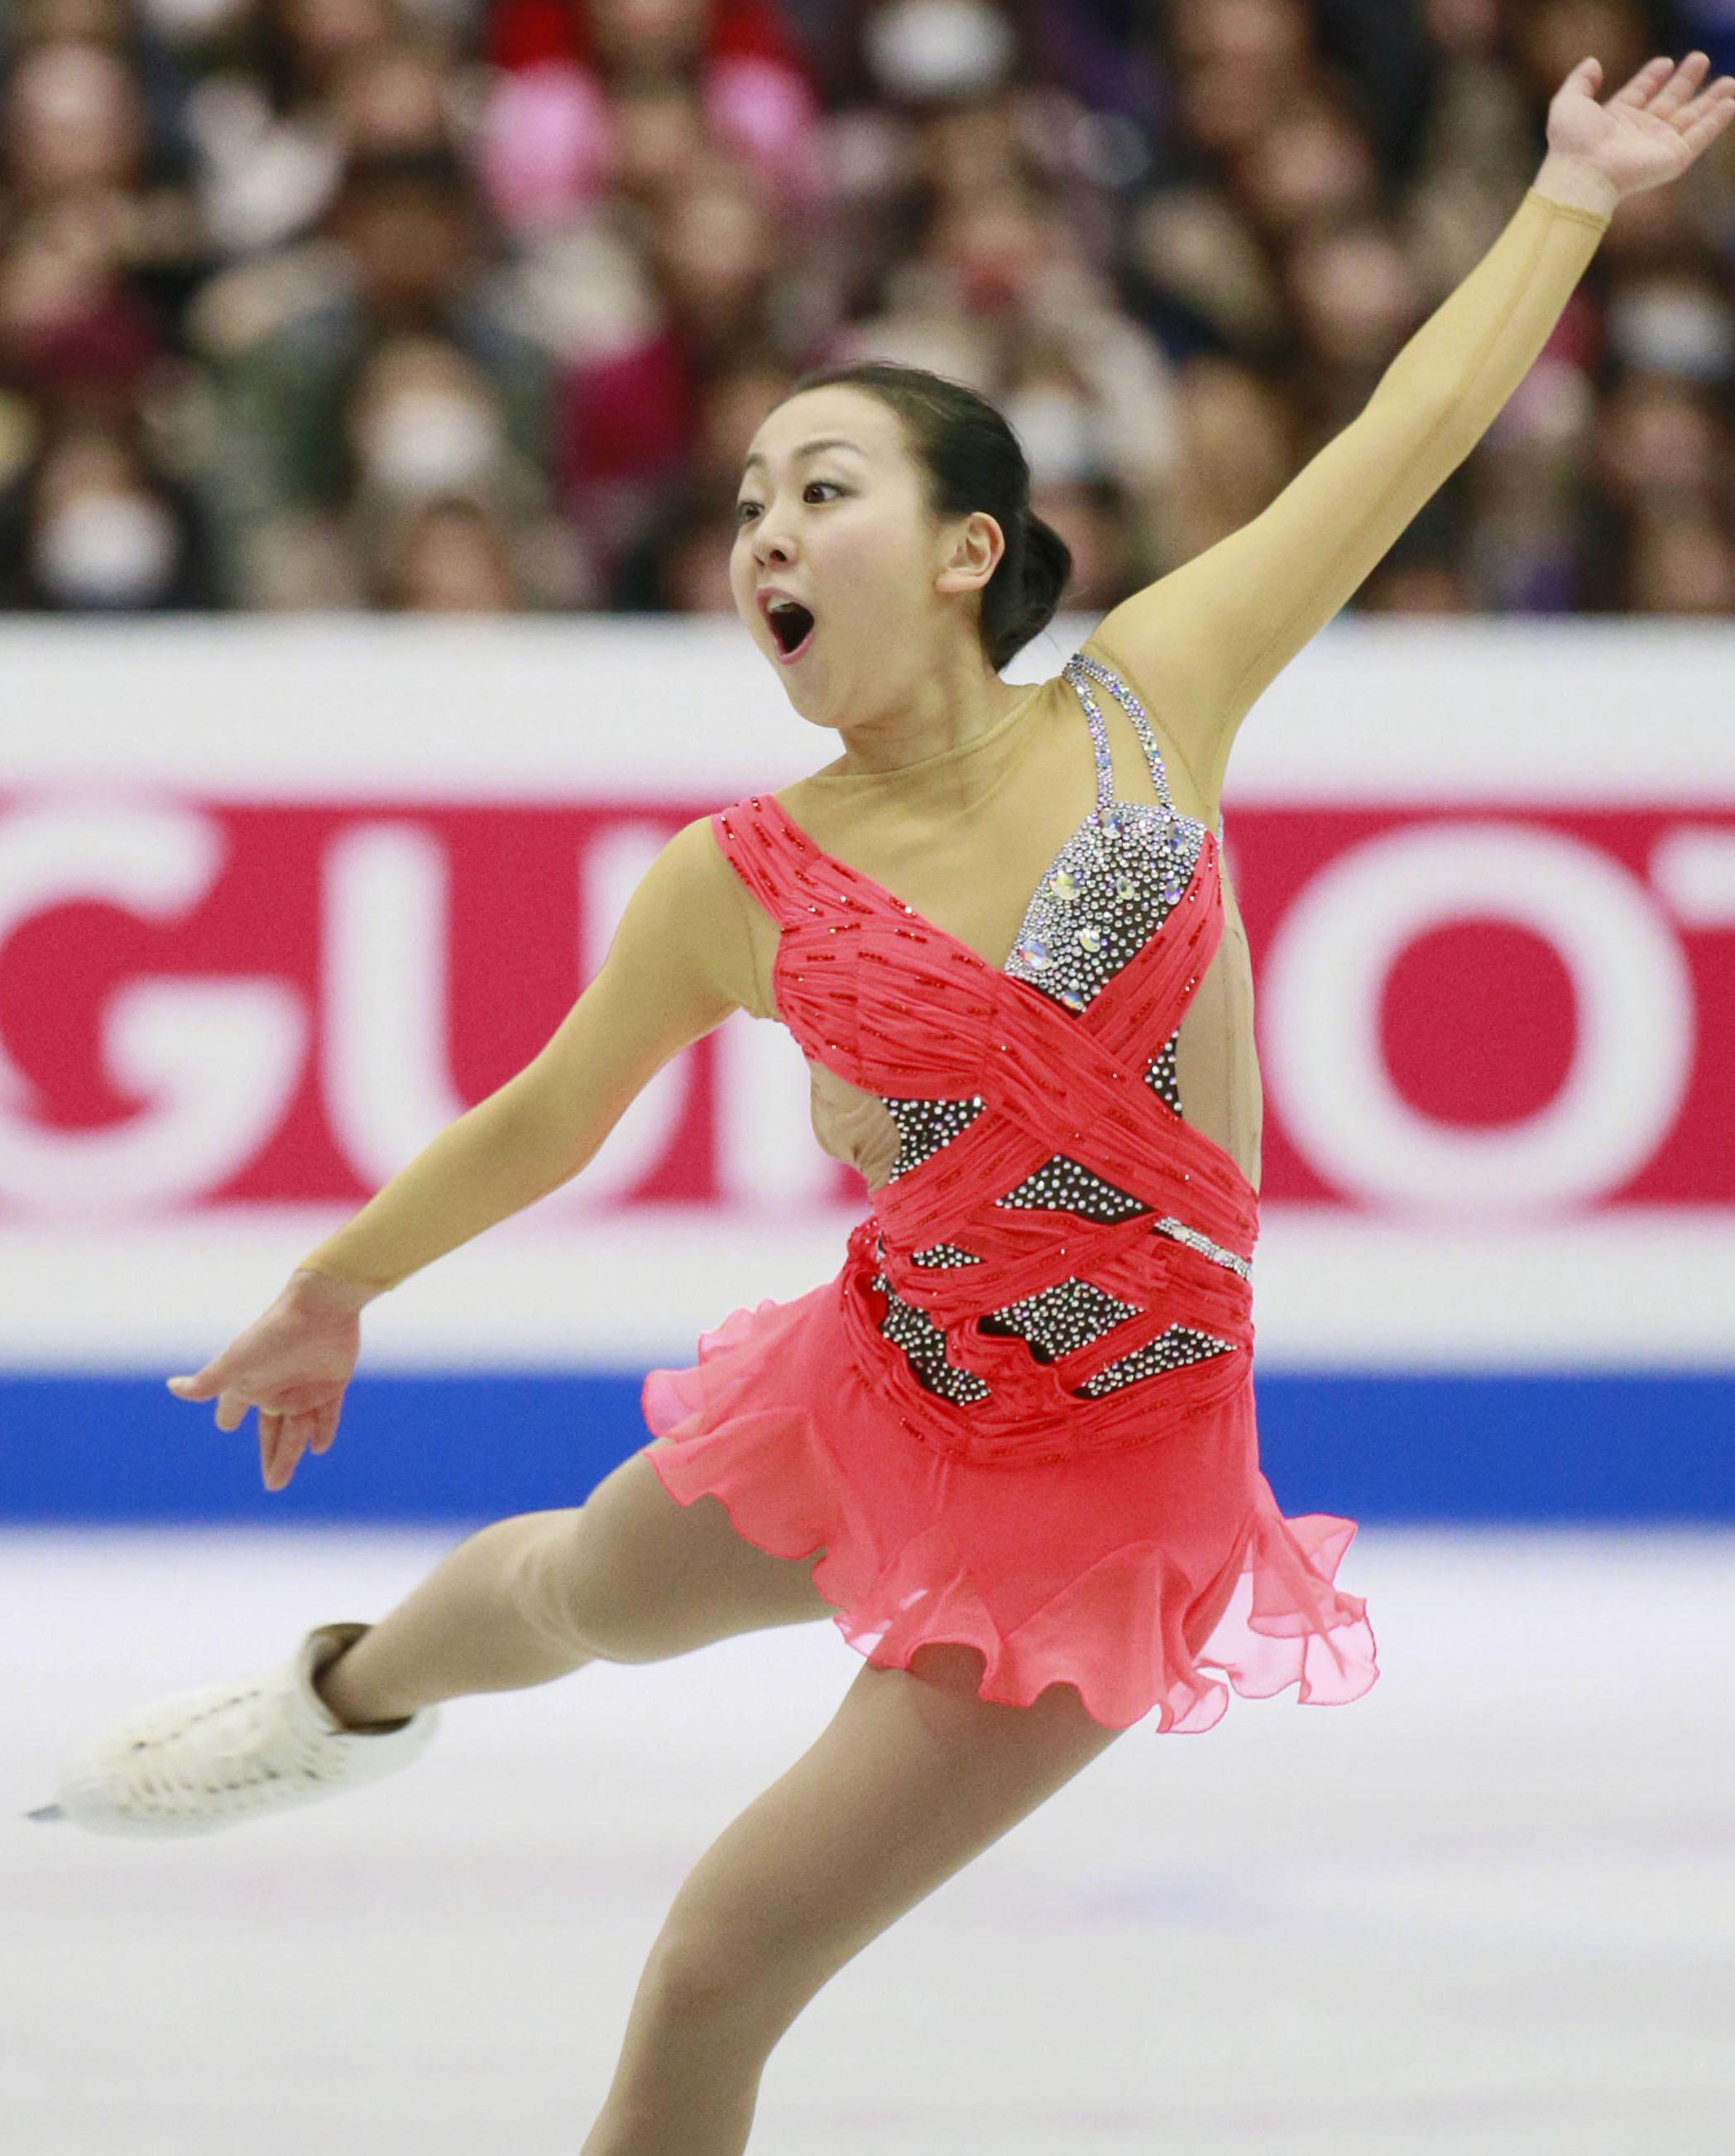 In control: Mao Asada leads the women's field after scoring 74.49 points in the short program at the Four Continents Figure Skating Championships on Saturday in Osaka. | KYODO